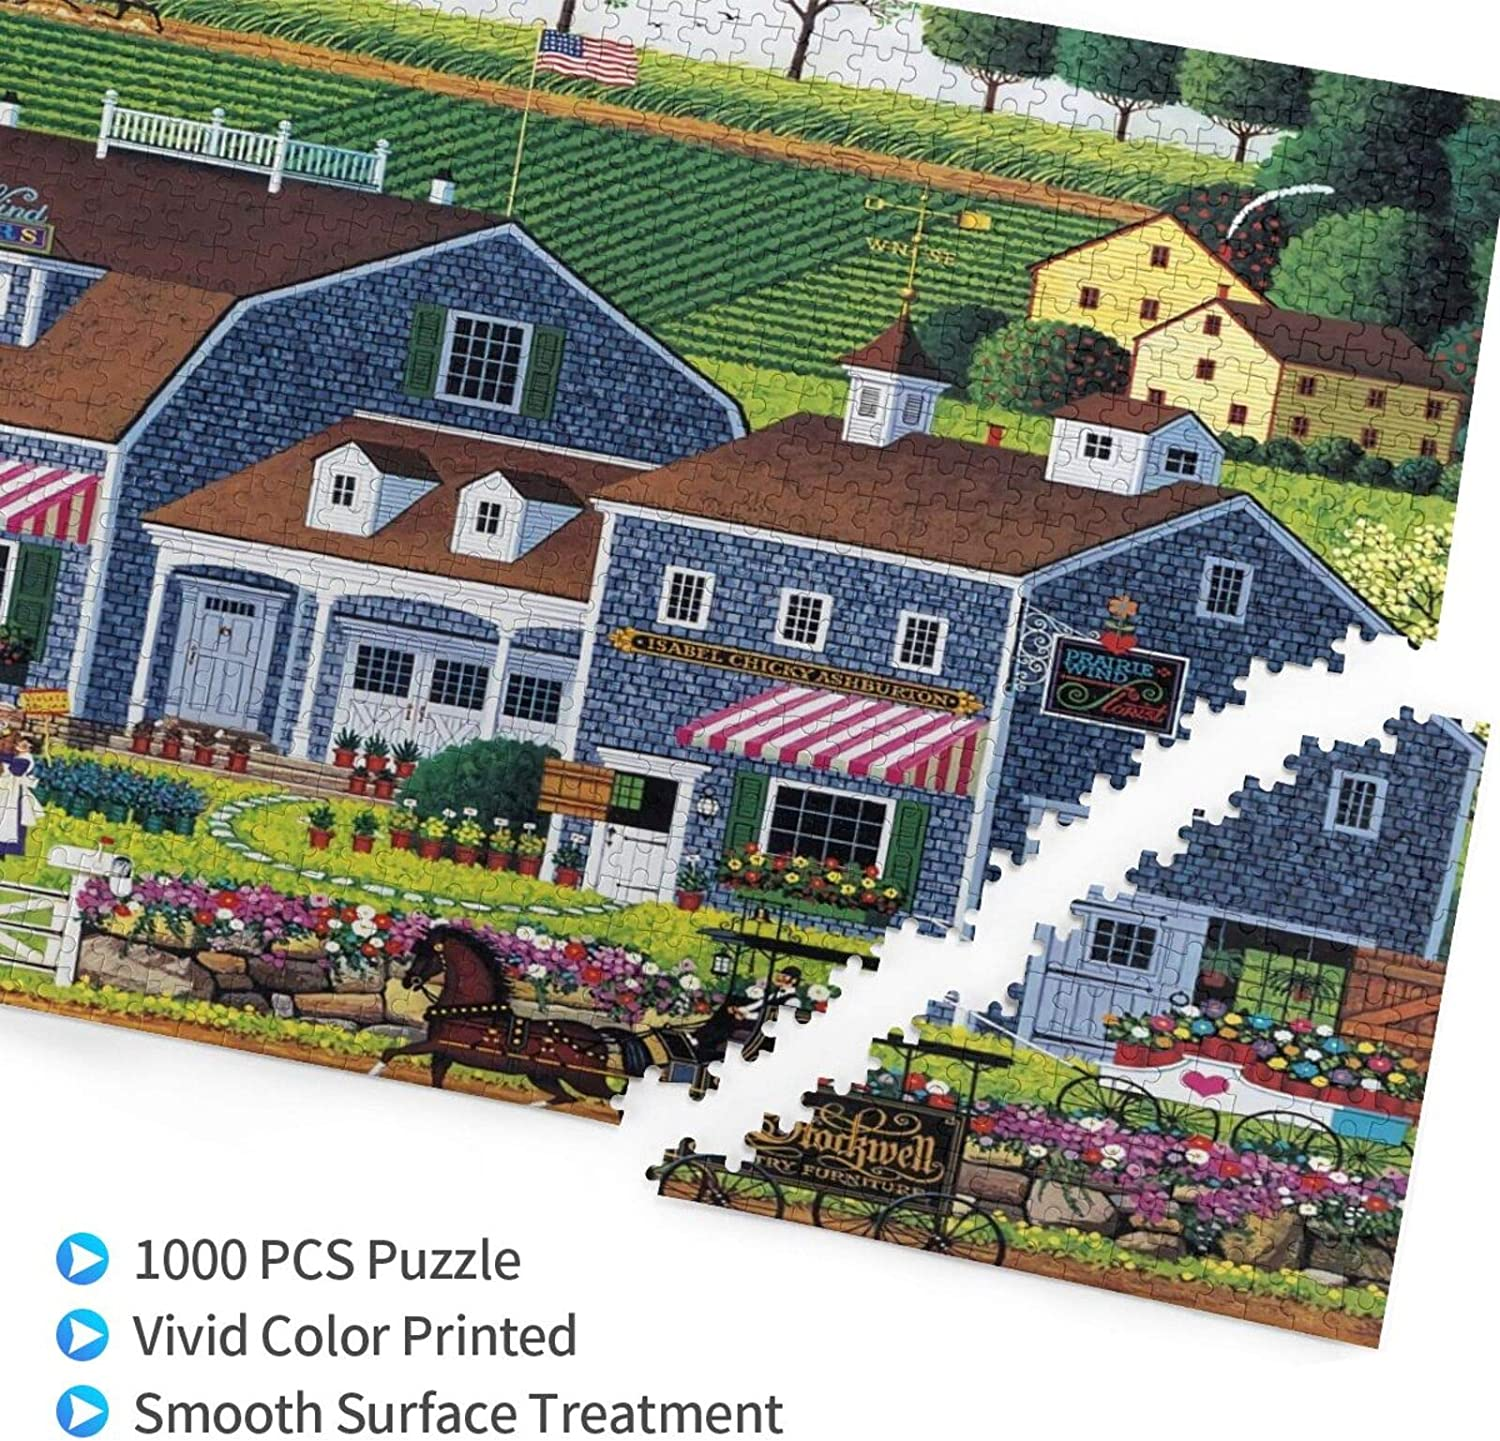 Prairie Wind Flowers Wooden Jigsaw Puzzles 1000 Pieces for Adults,Puzzles for Kids 1000 Piece Charles Wysocki Challenging Game Gift Toys for Adults Kids Teens Family Puzzles-29.5x19.7 Inch